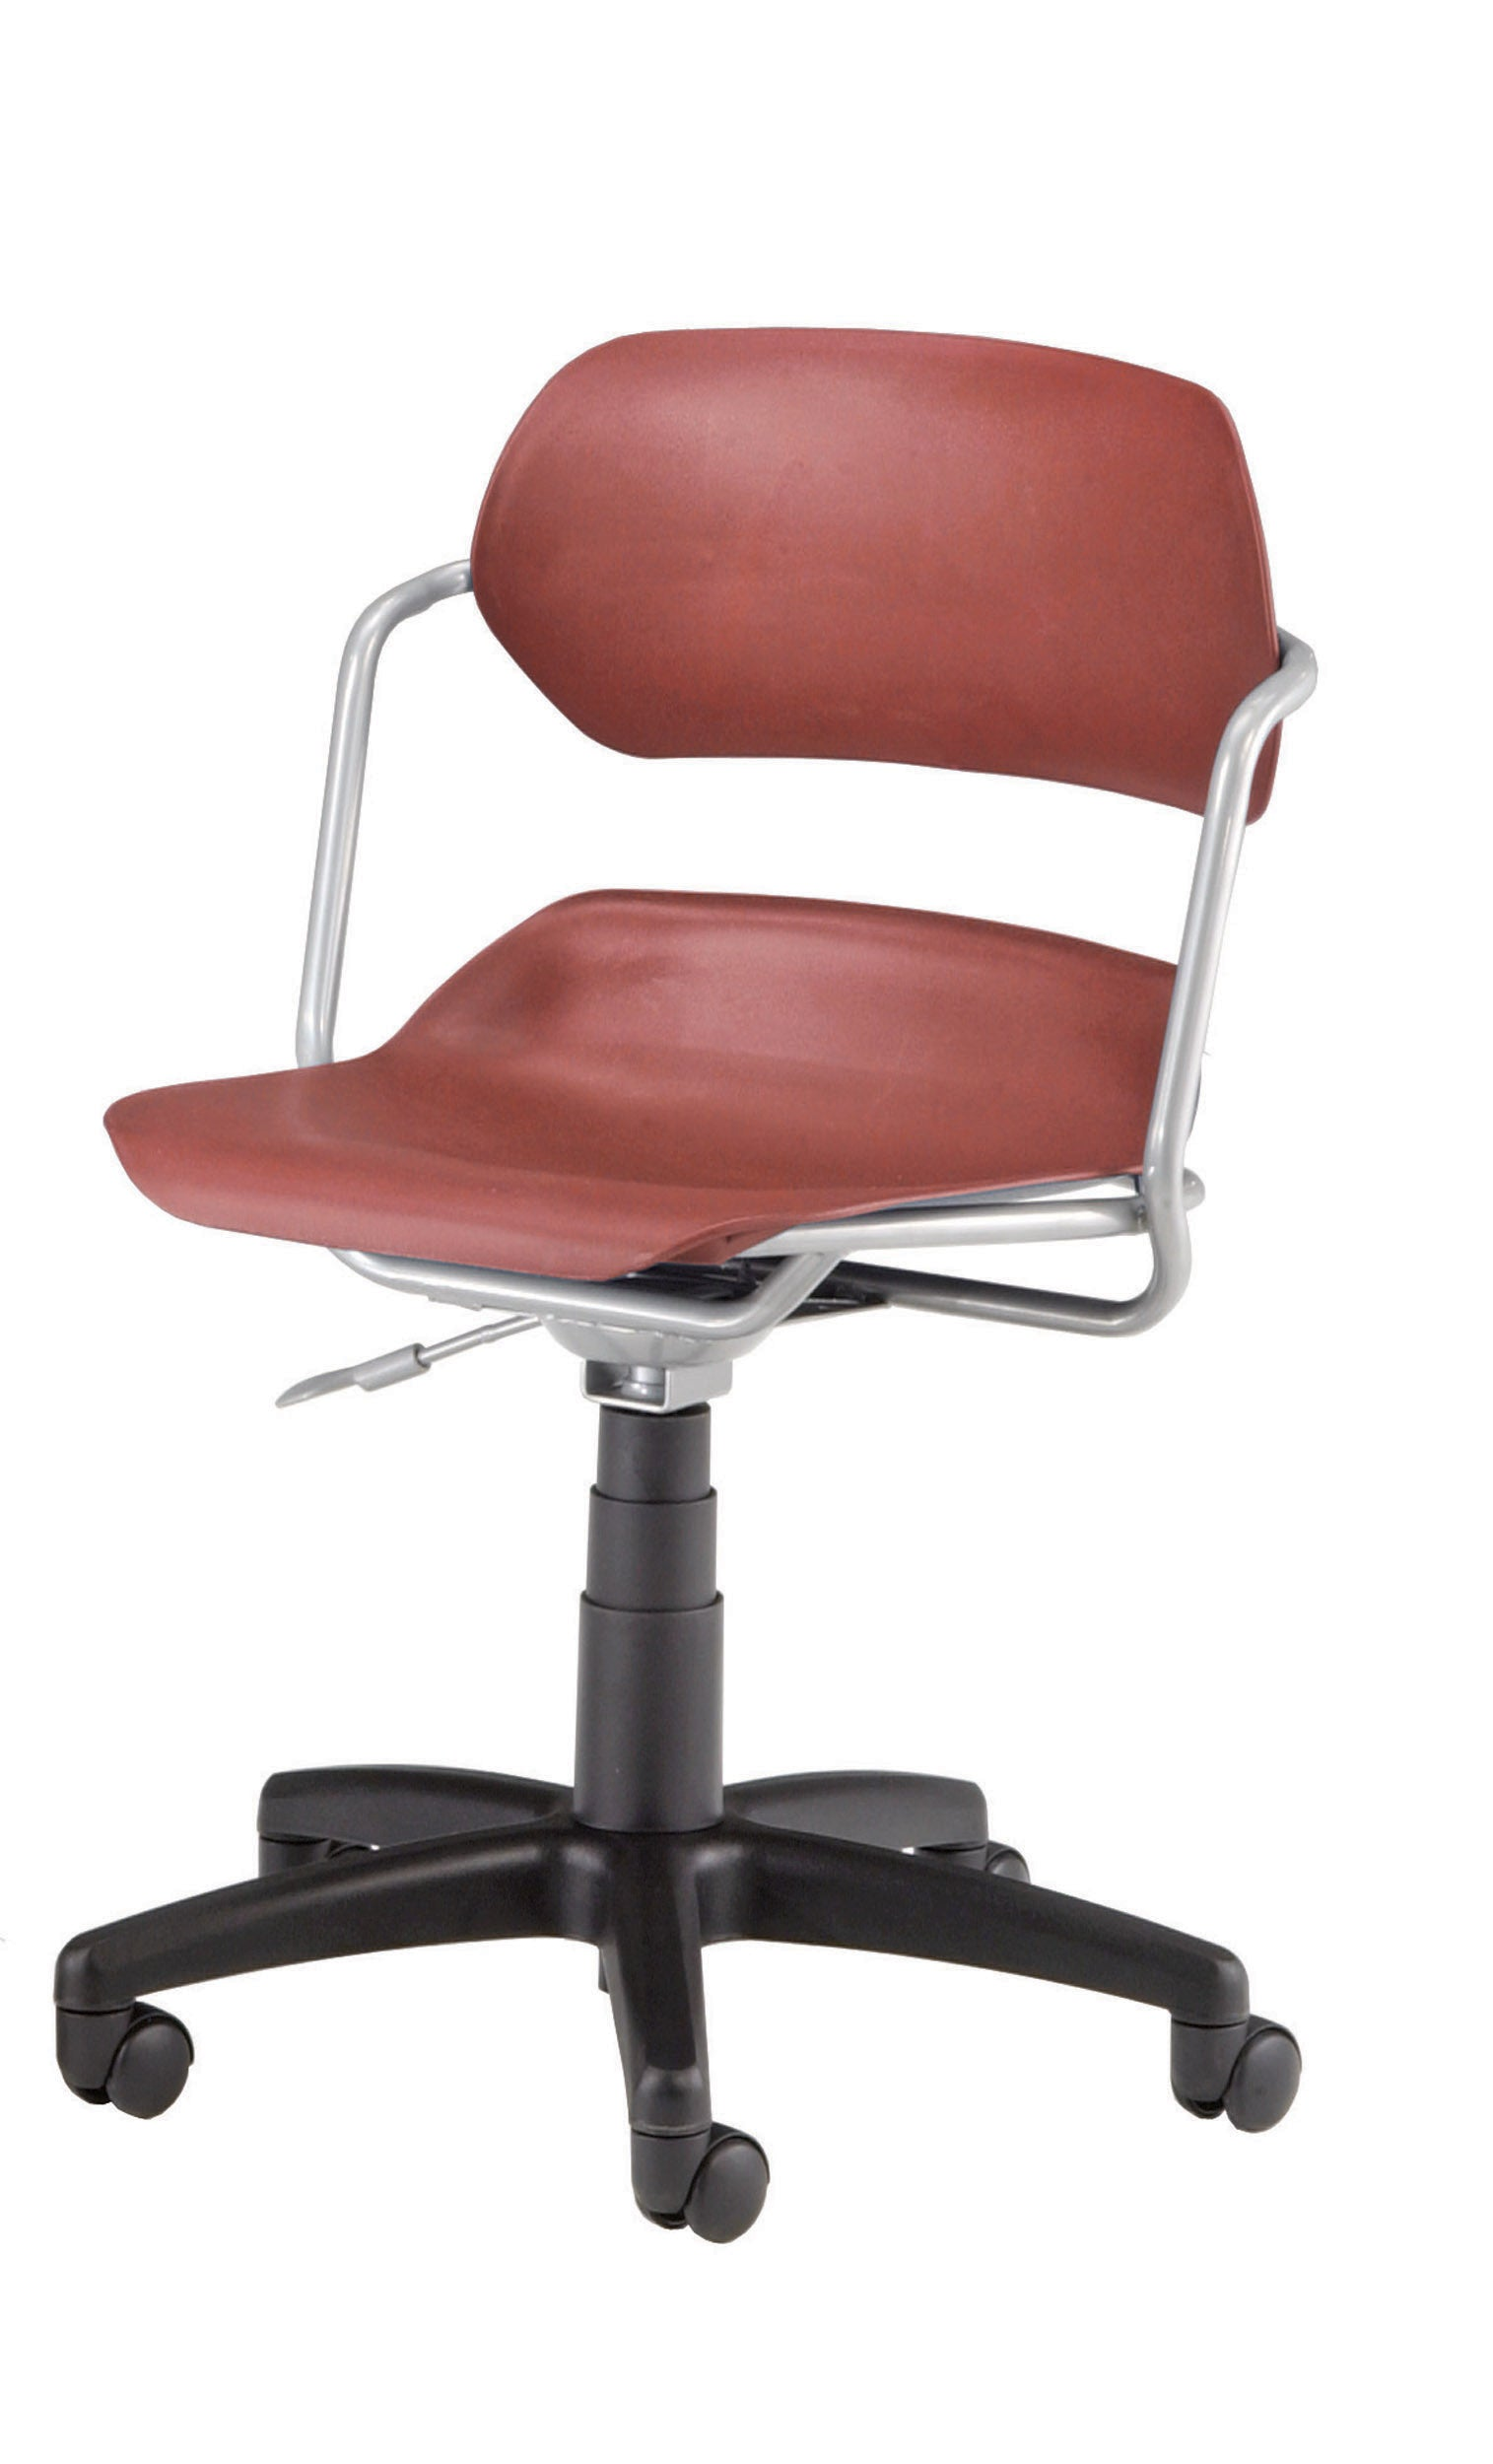 Ofminc Model 200 Martisa Series Plastic Swivel Task Arms Chair